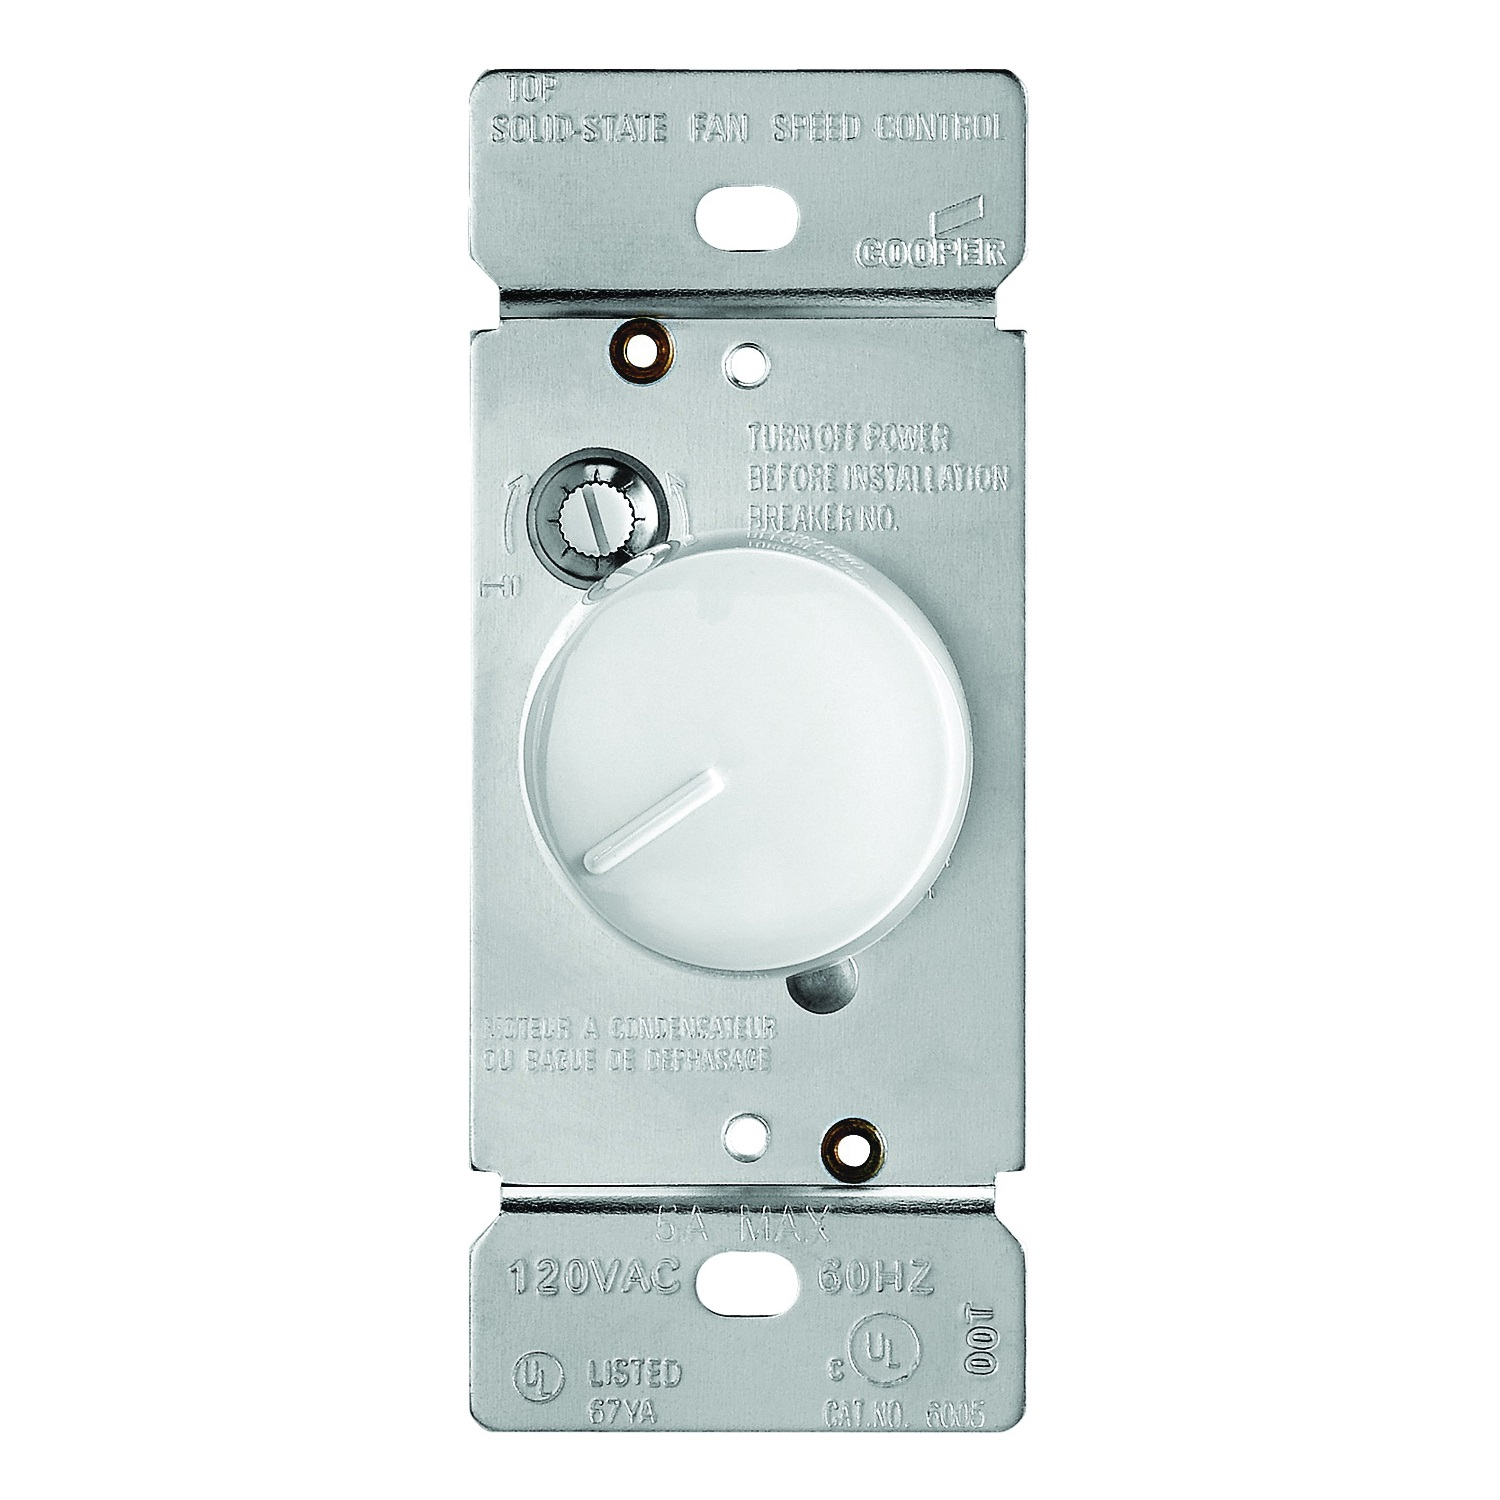 Picture of Eaton Wiring Devices RFS5-W-K Rotary Control Switch, 5 A, 120 V, Rotary Actuator, Polycarbonate, White